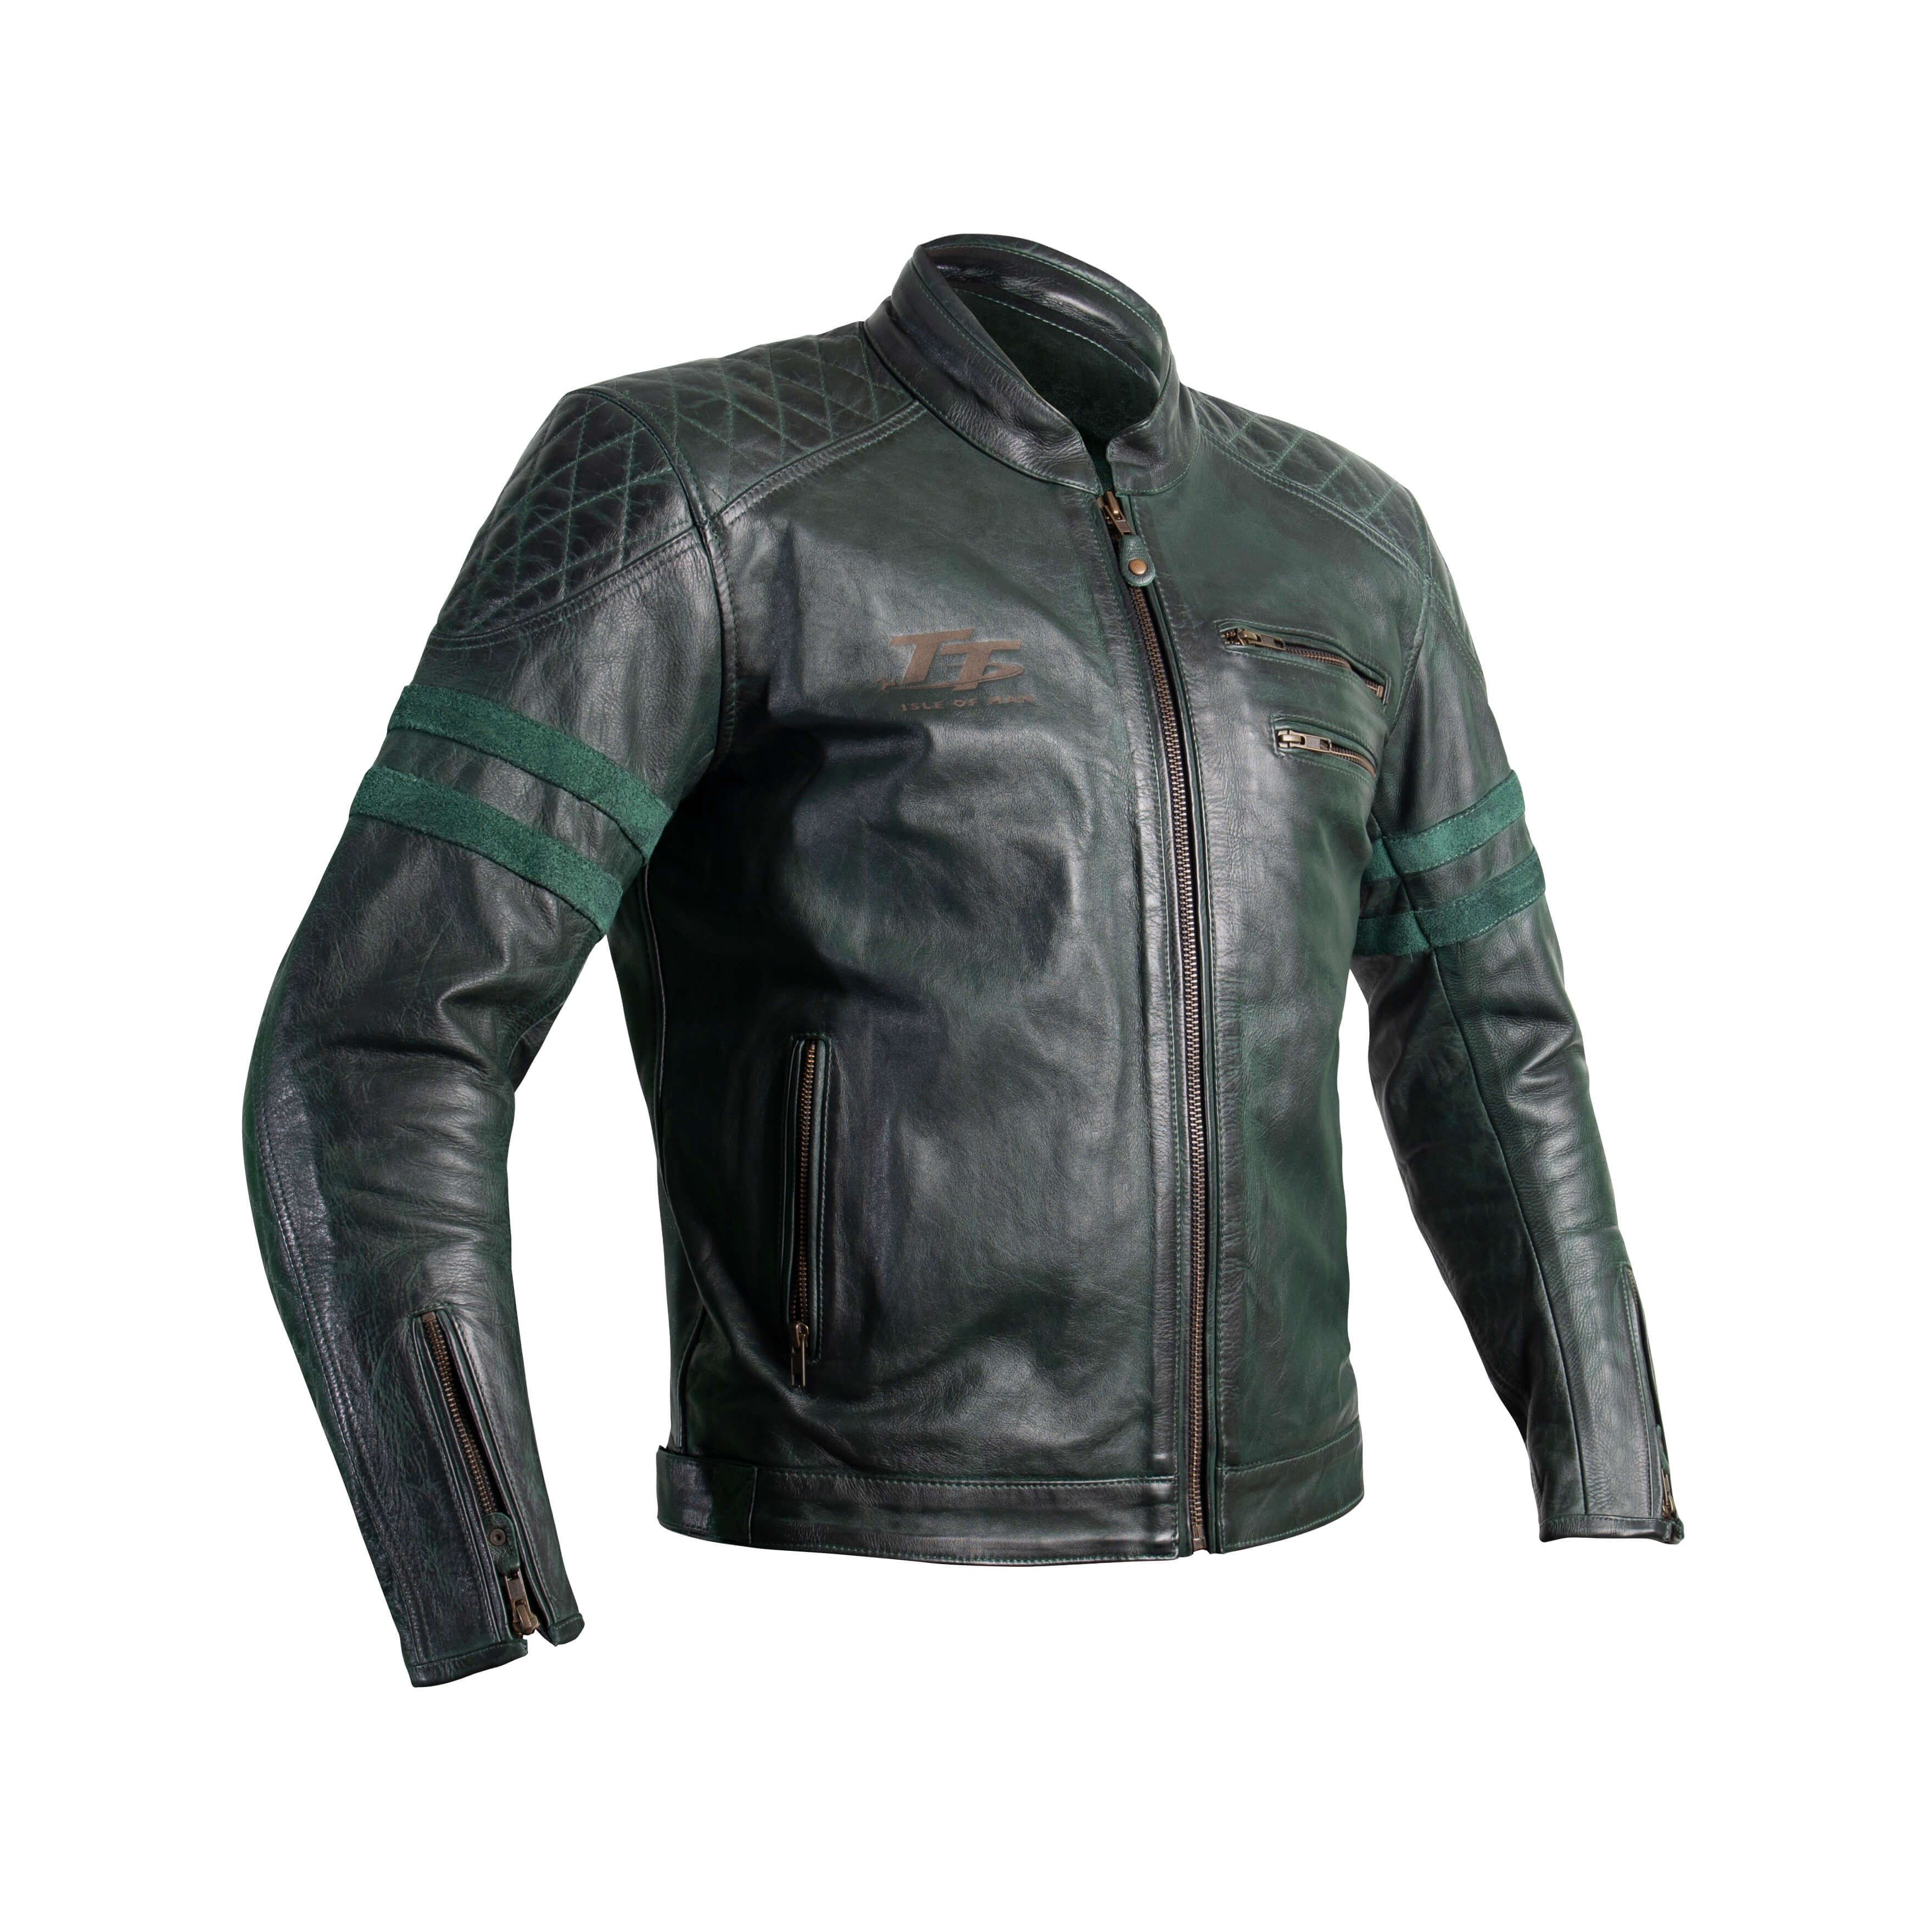 RST IOM TT Hillberry CE leather jacket